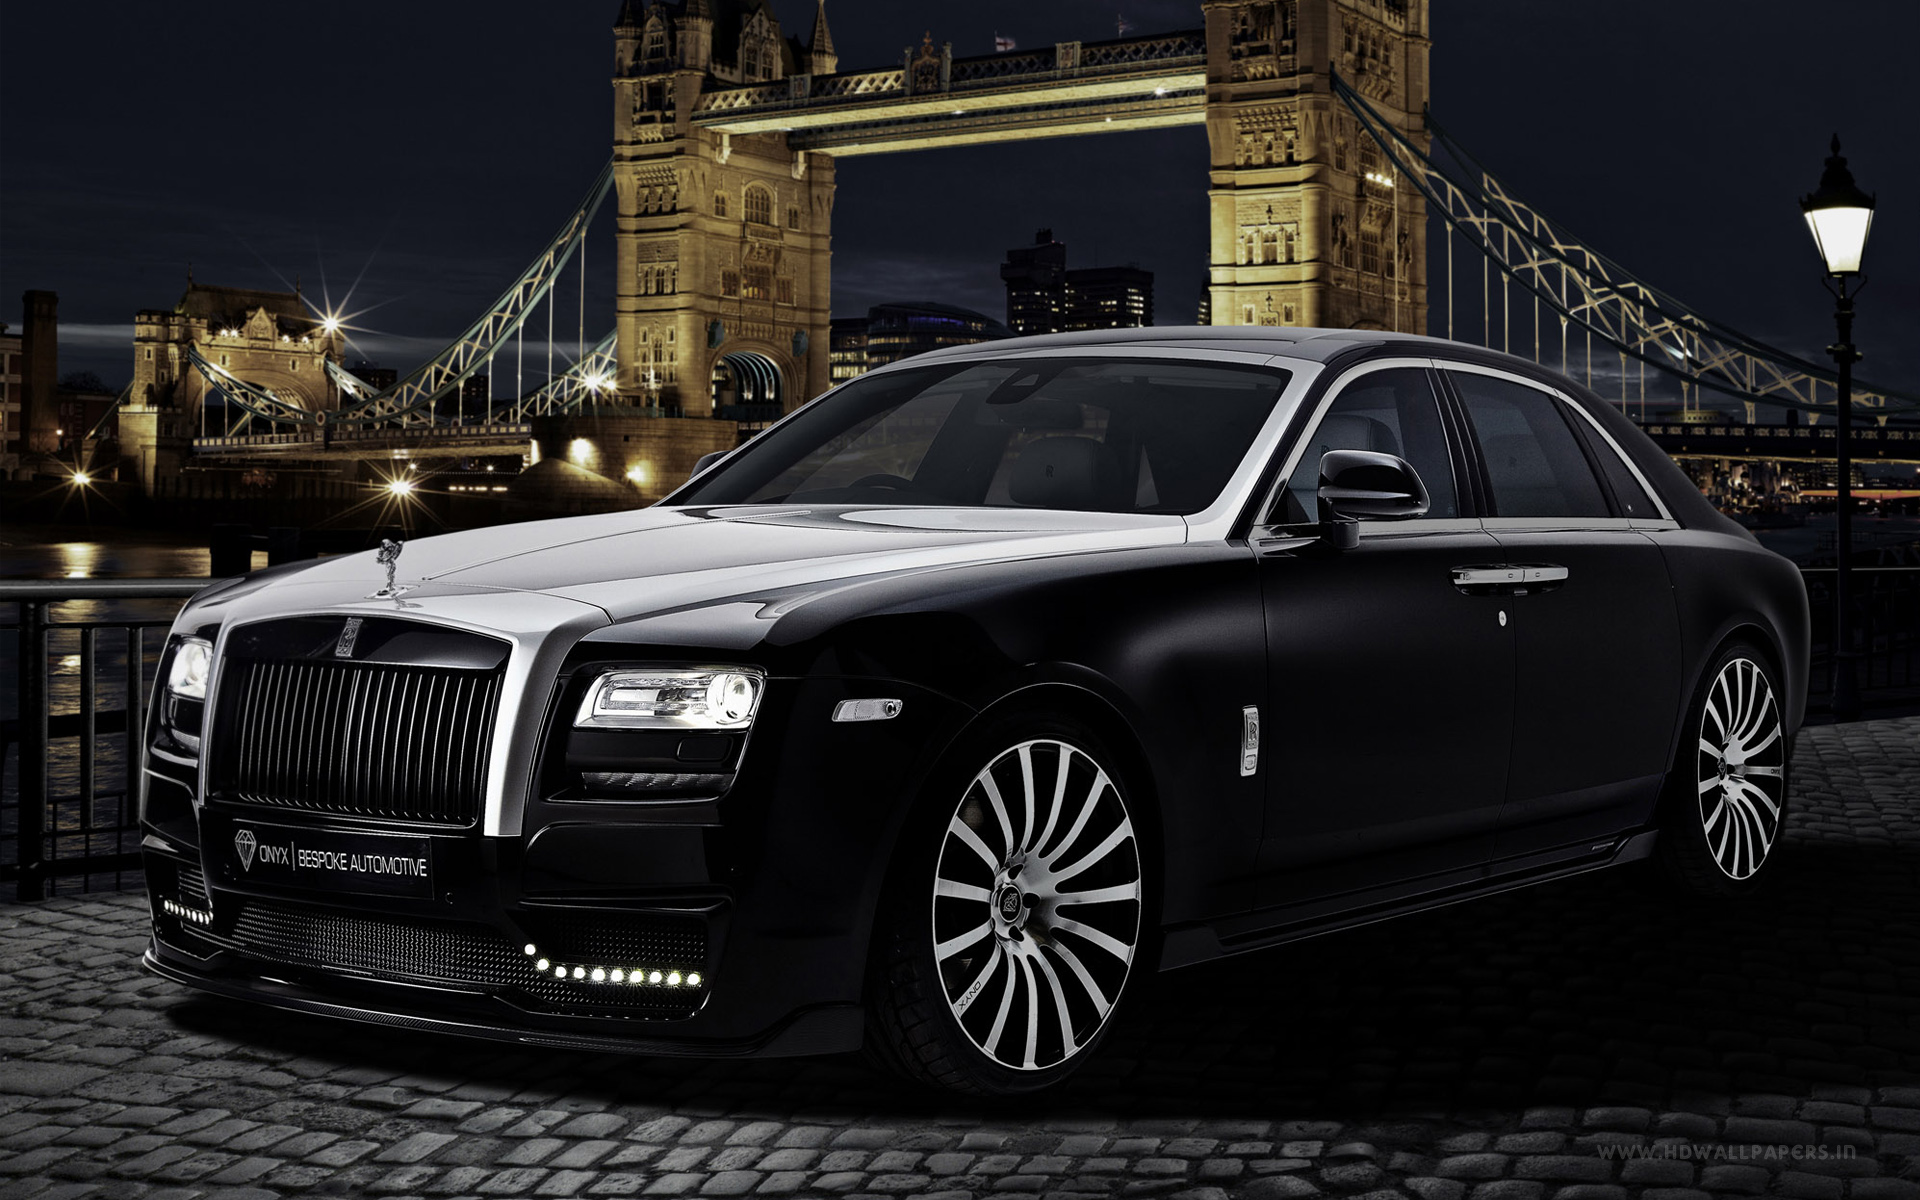 2015 onyx rolls royce ghost san mortiz wallpaper hd car wallpapers 2015 onyx rolls royce ghost san mortiz voltagebd Gallery